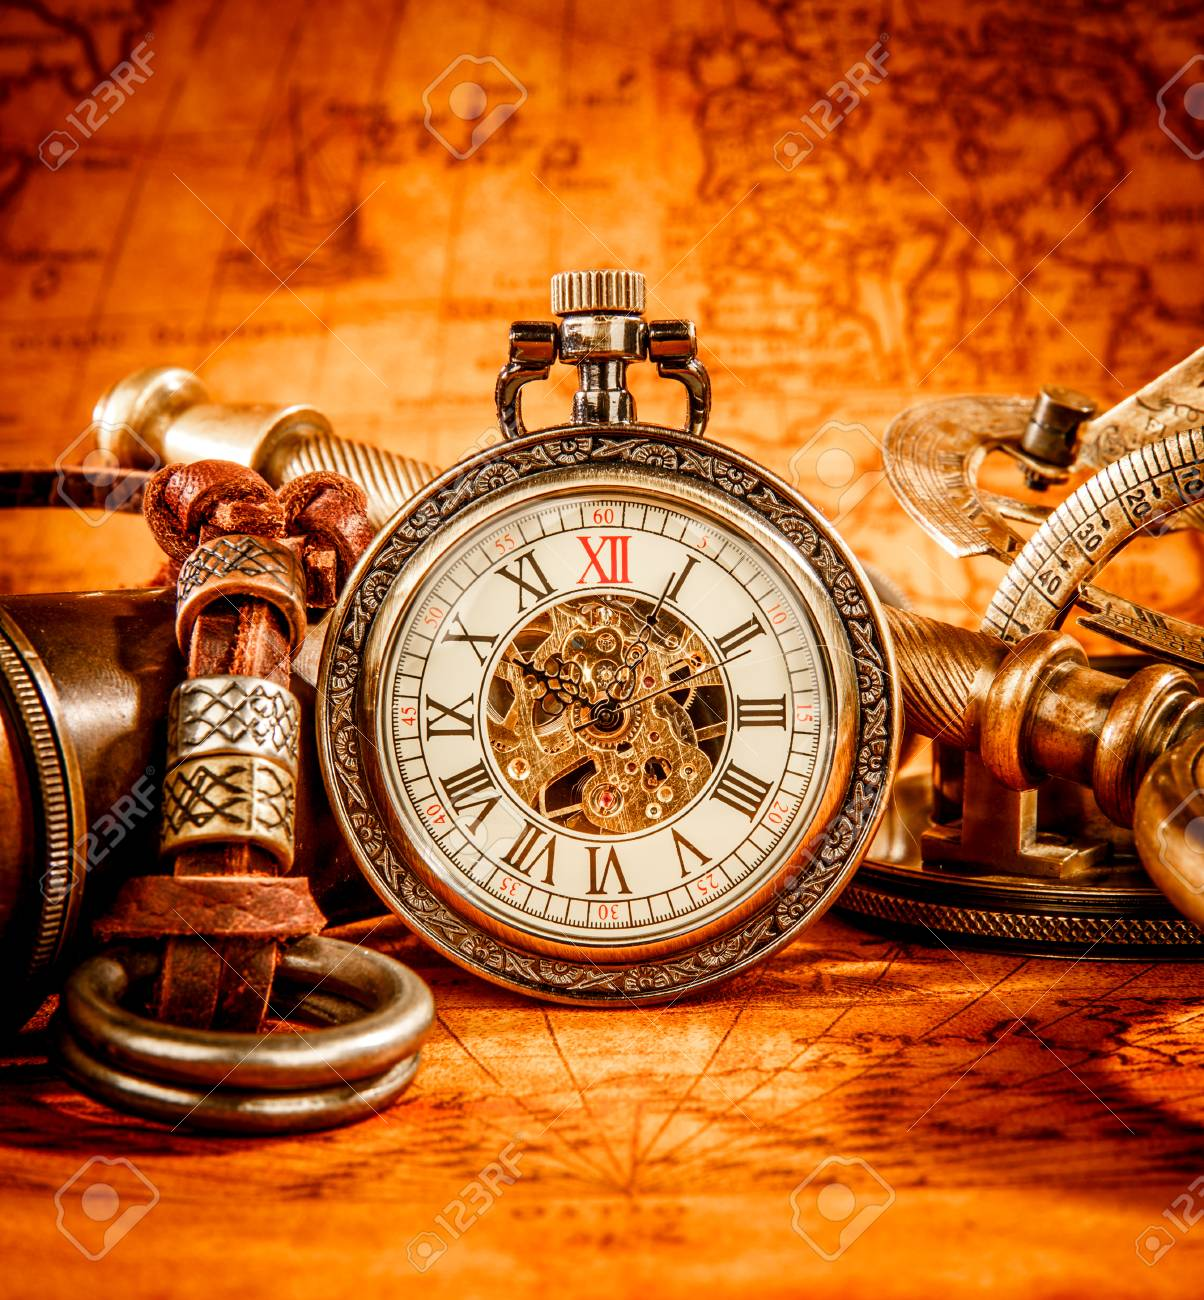 Vintage antique pocket watch on an ancient world map in 1565 stock stock photo vintage antique pocket watch on an ancient world map in 1565 gumiabroncs Image collections